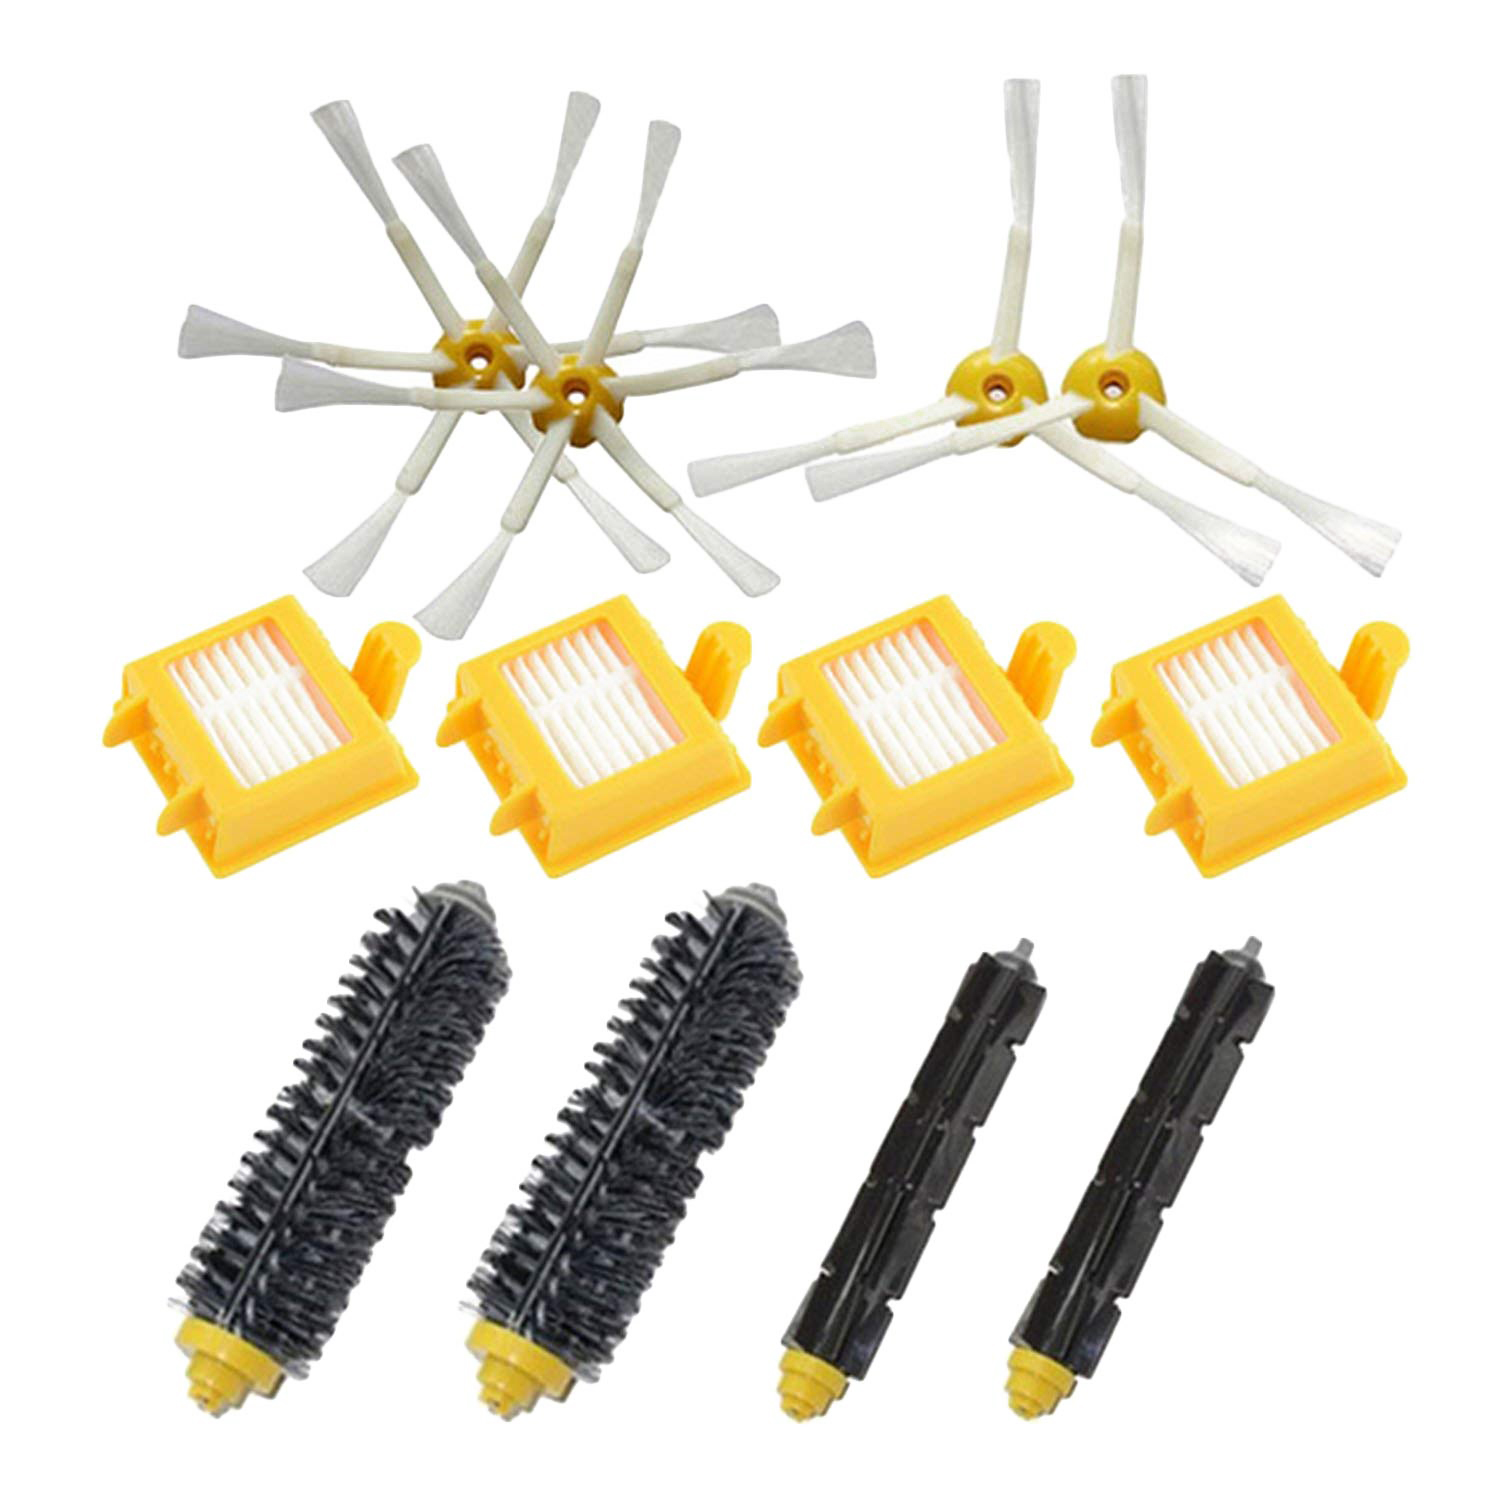 Side Brush + Filter + Bristle Beater Replacement Kit Parts Set for iRobot Roomba 700 Series Vacuum Cleaner Robots 760 77 24pcs replacement filter bristle beater brush round cleaning tool vacuum cleaner accessories kit for i robot r oomb 500 series